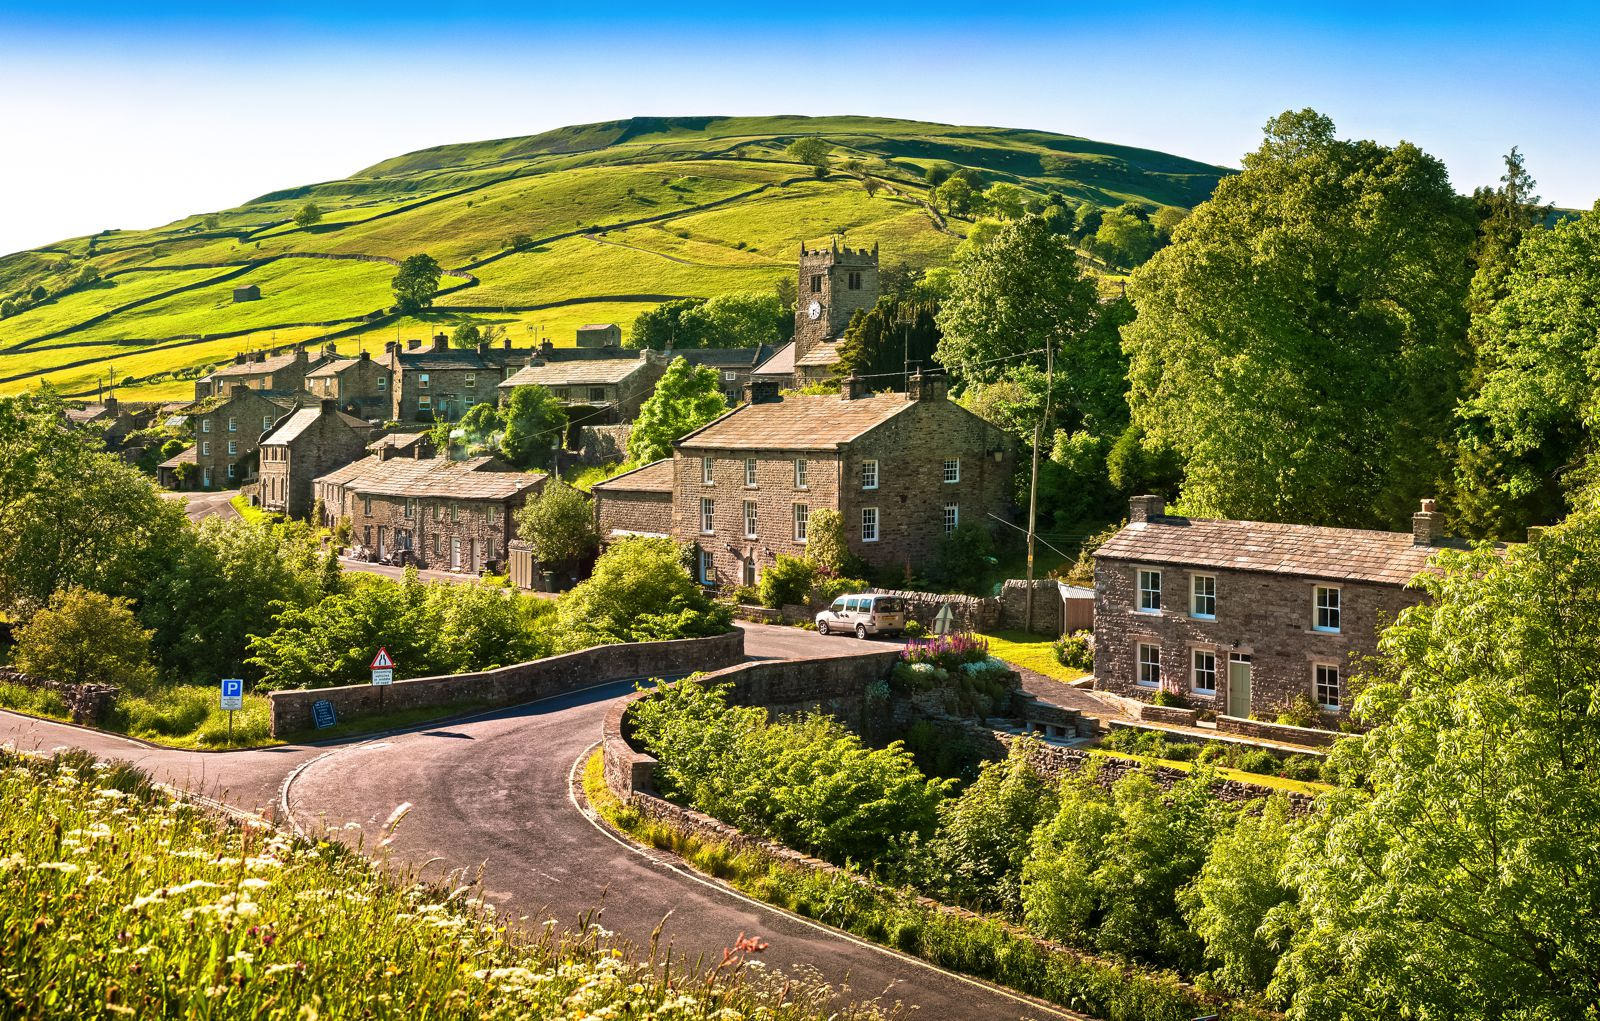 The Rolling Hills Of Yorkshire... 11 Photos That Will Make You Want To Visit Yorkshire! (3)